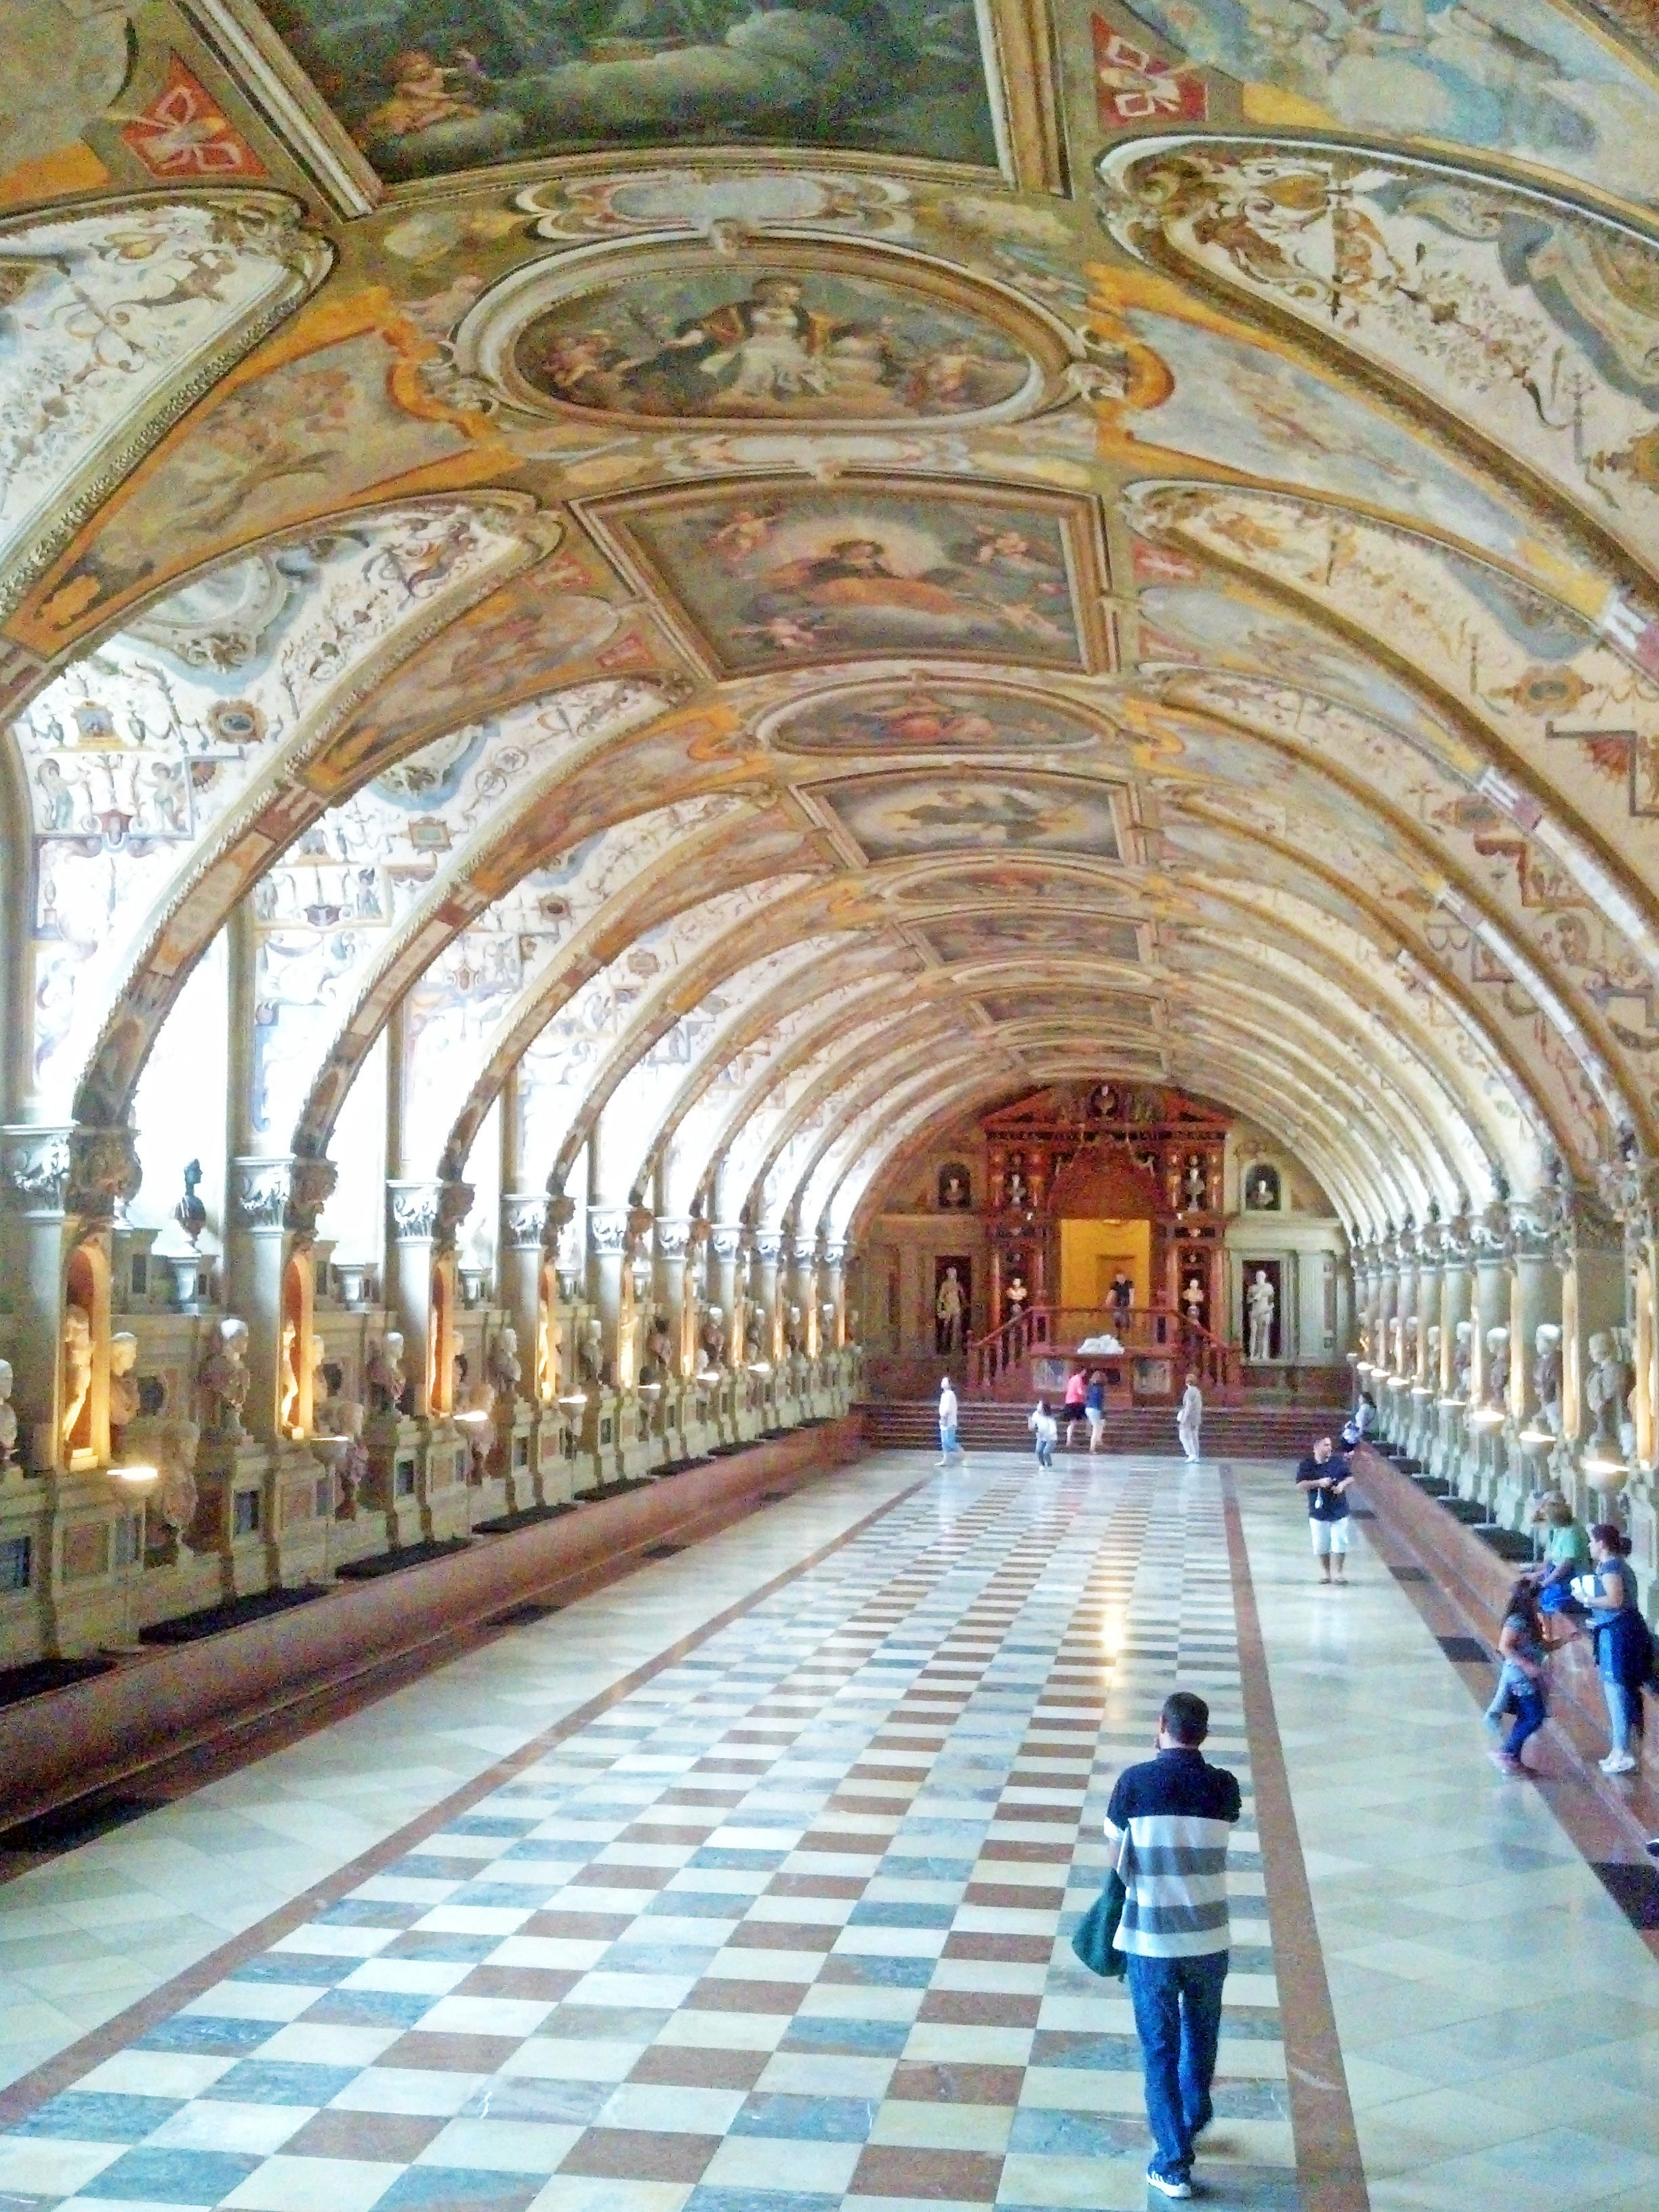 The massive ornate Antiquarium.